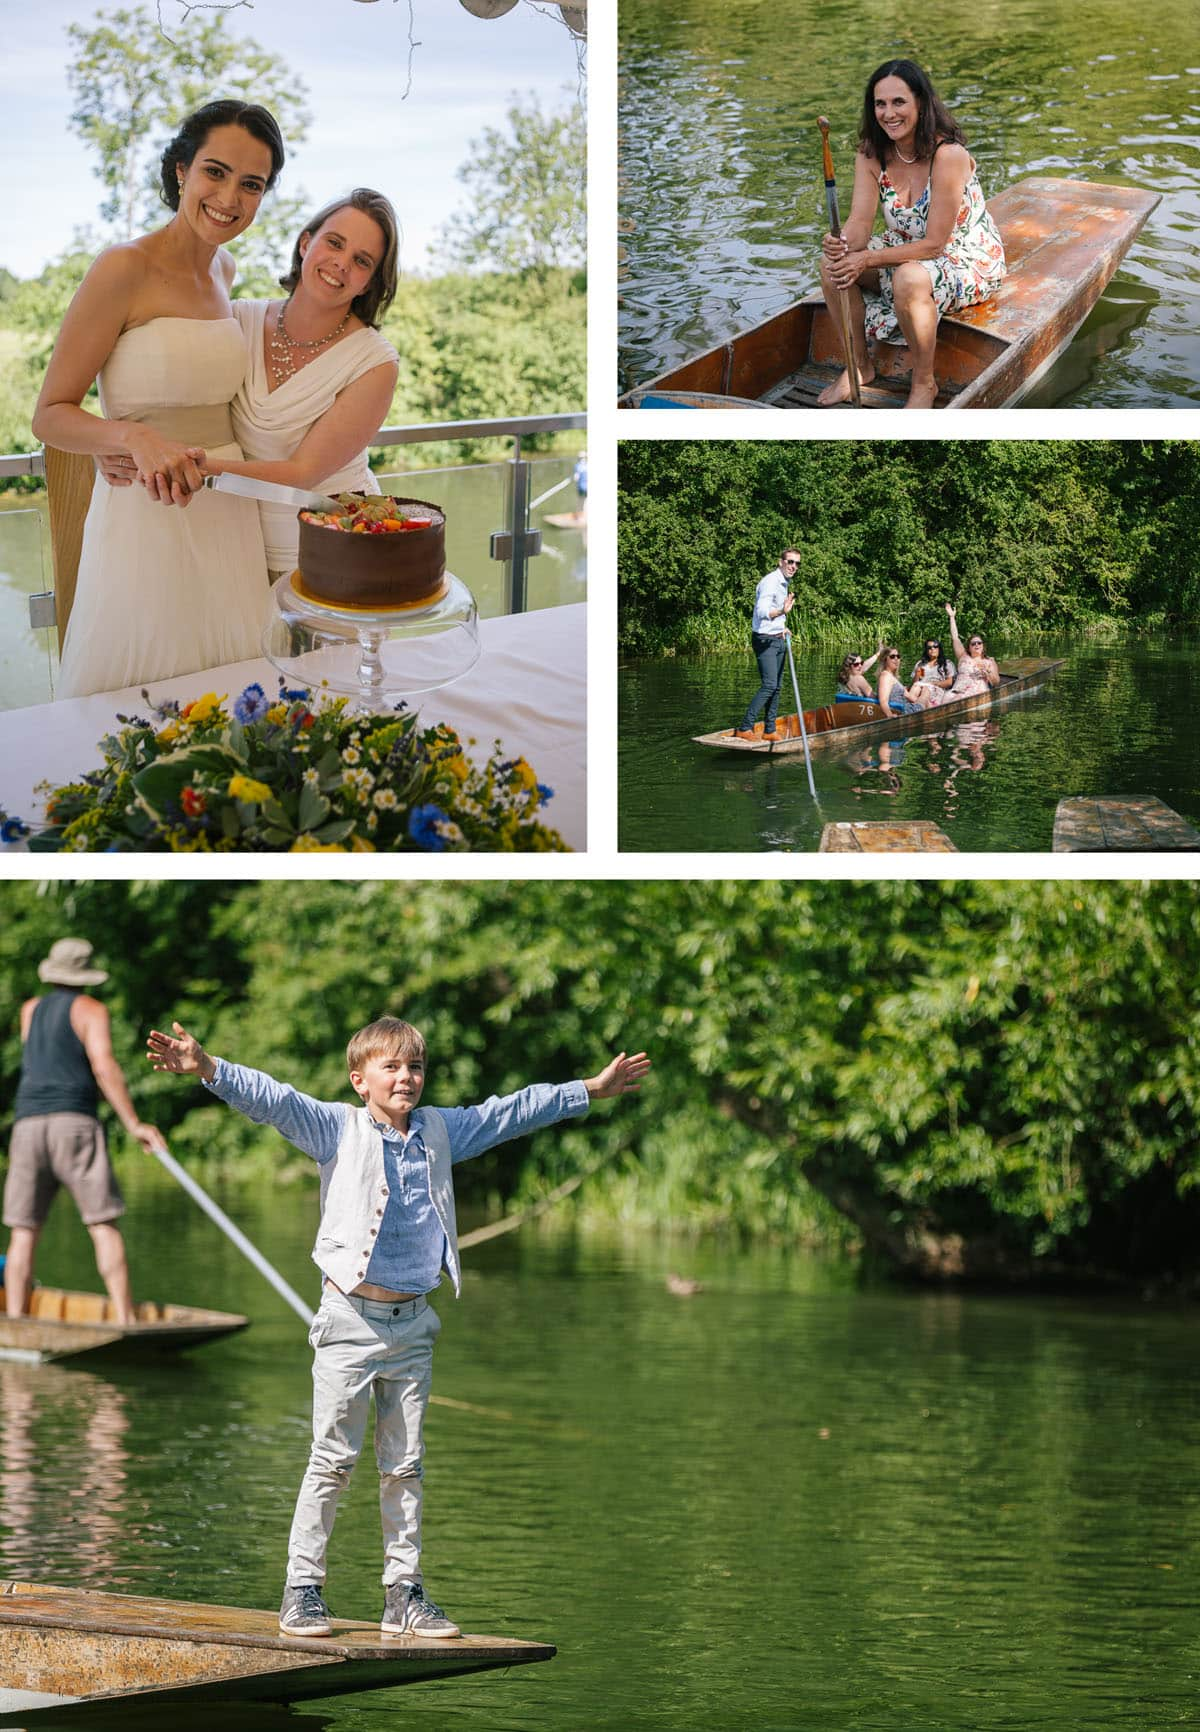 Collage of images at Cherwell Boathouse wedding party. Brides cutting chocolate cake, guests in punts.